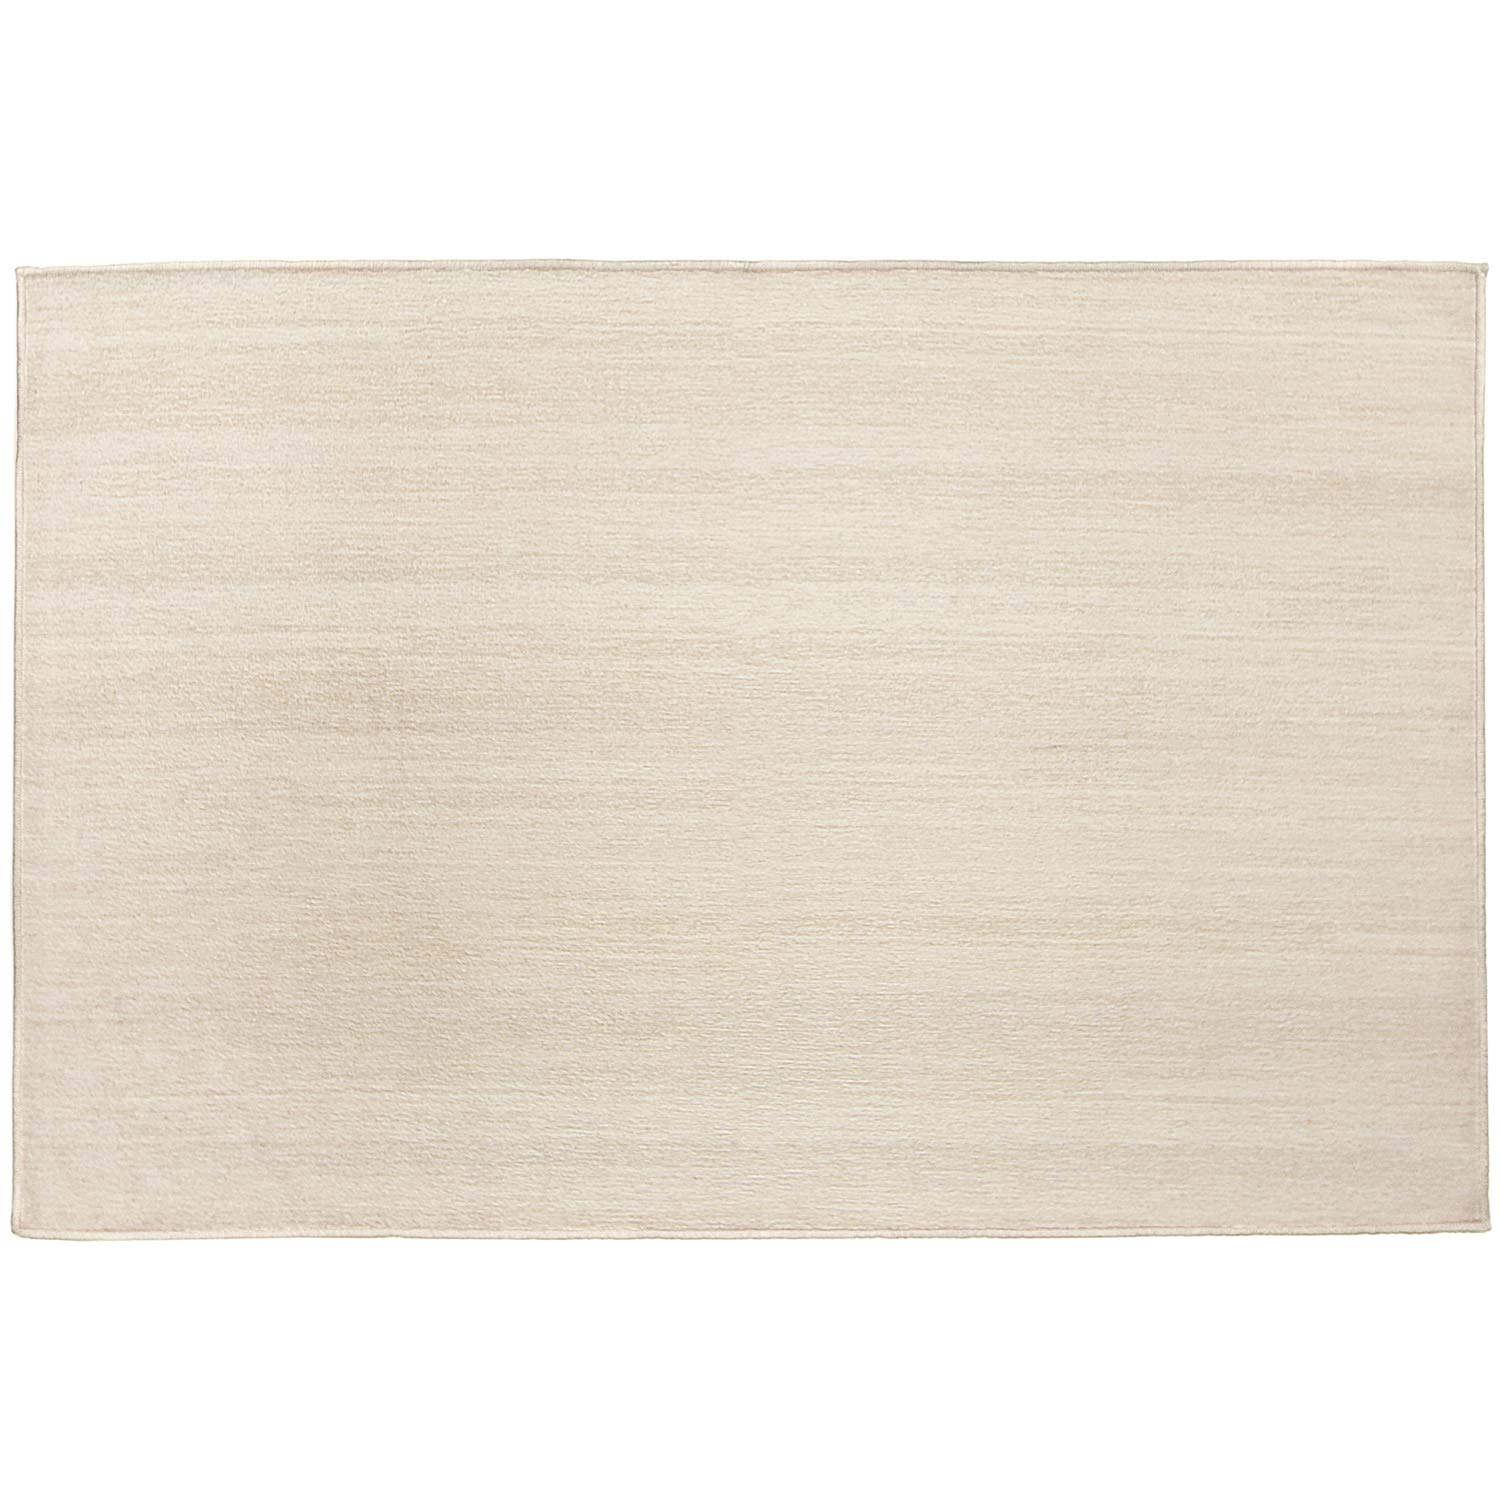 RUGGABLE Washable Stain Resistant Indoor/Outdoor, Kids, Pets, and Dog Friendly Accent Rug 3'x5' Solid Textured Cream